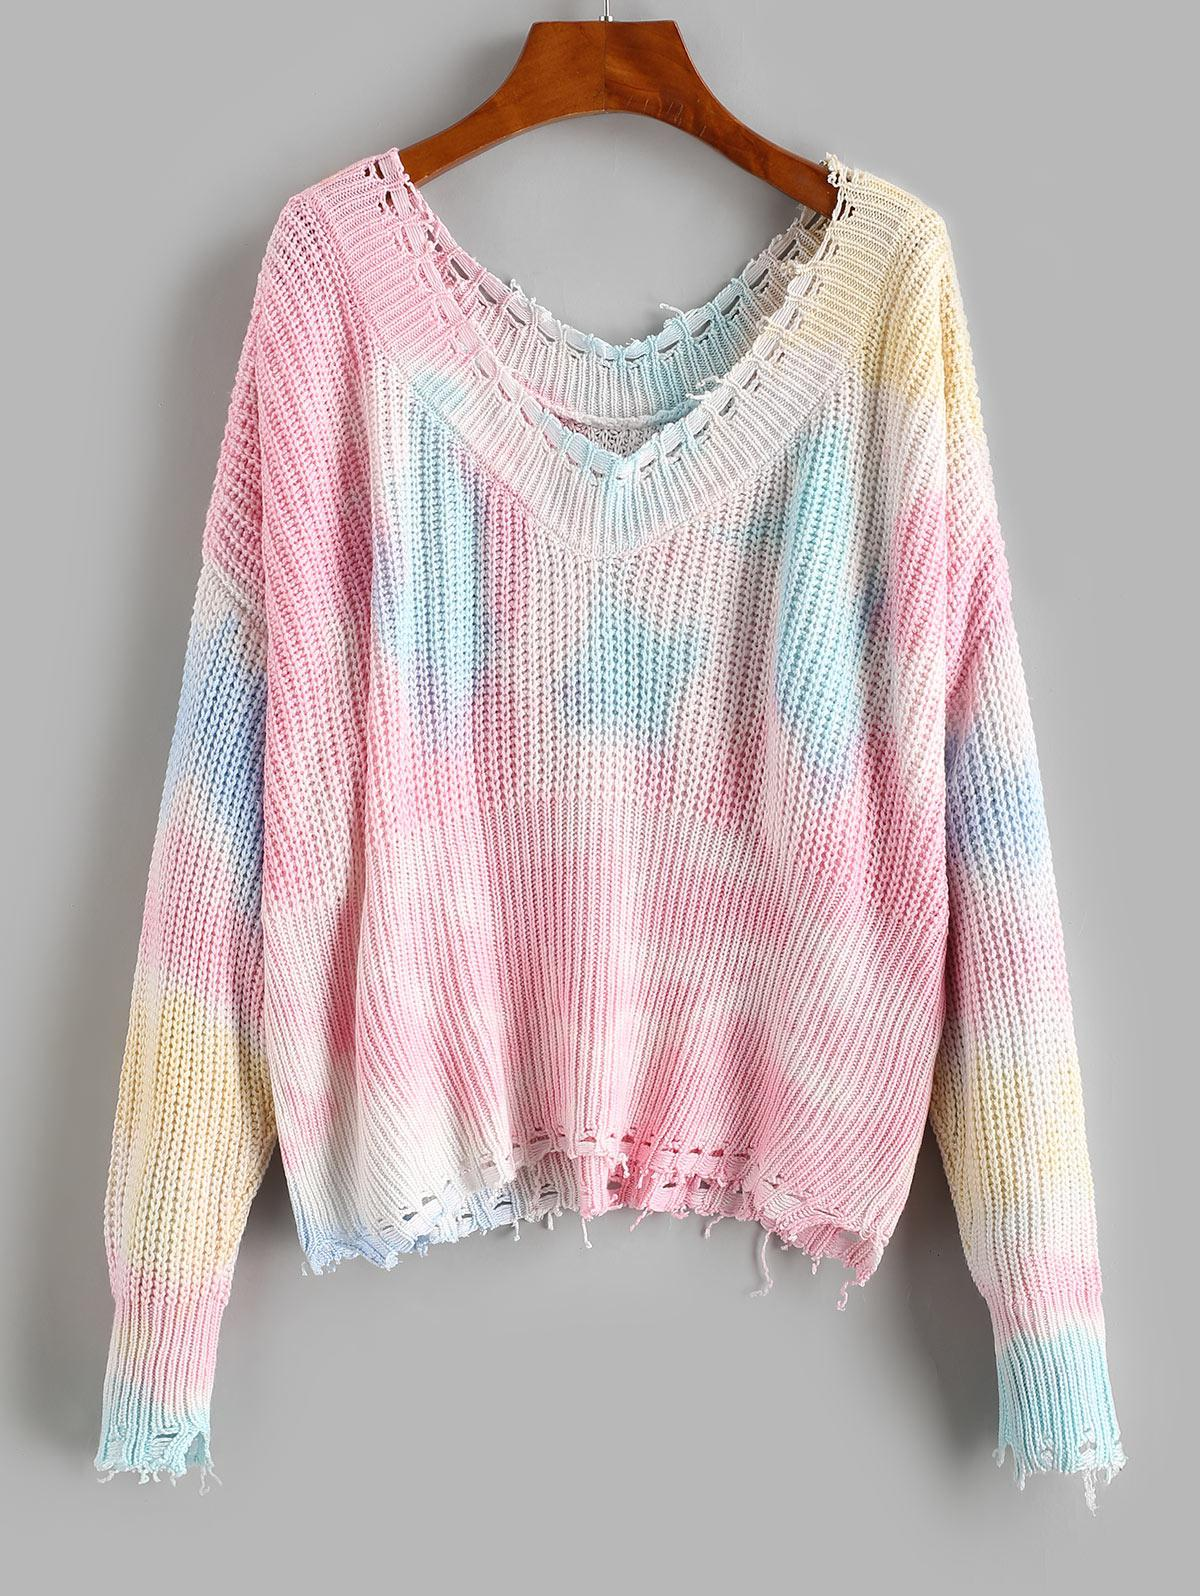 Distressed Frayed Tie Dye Oversized Sweater